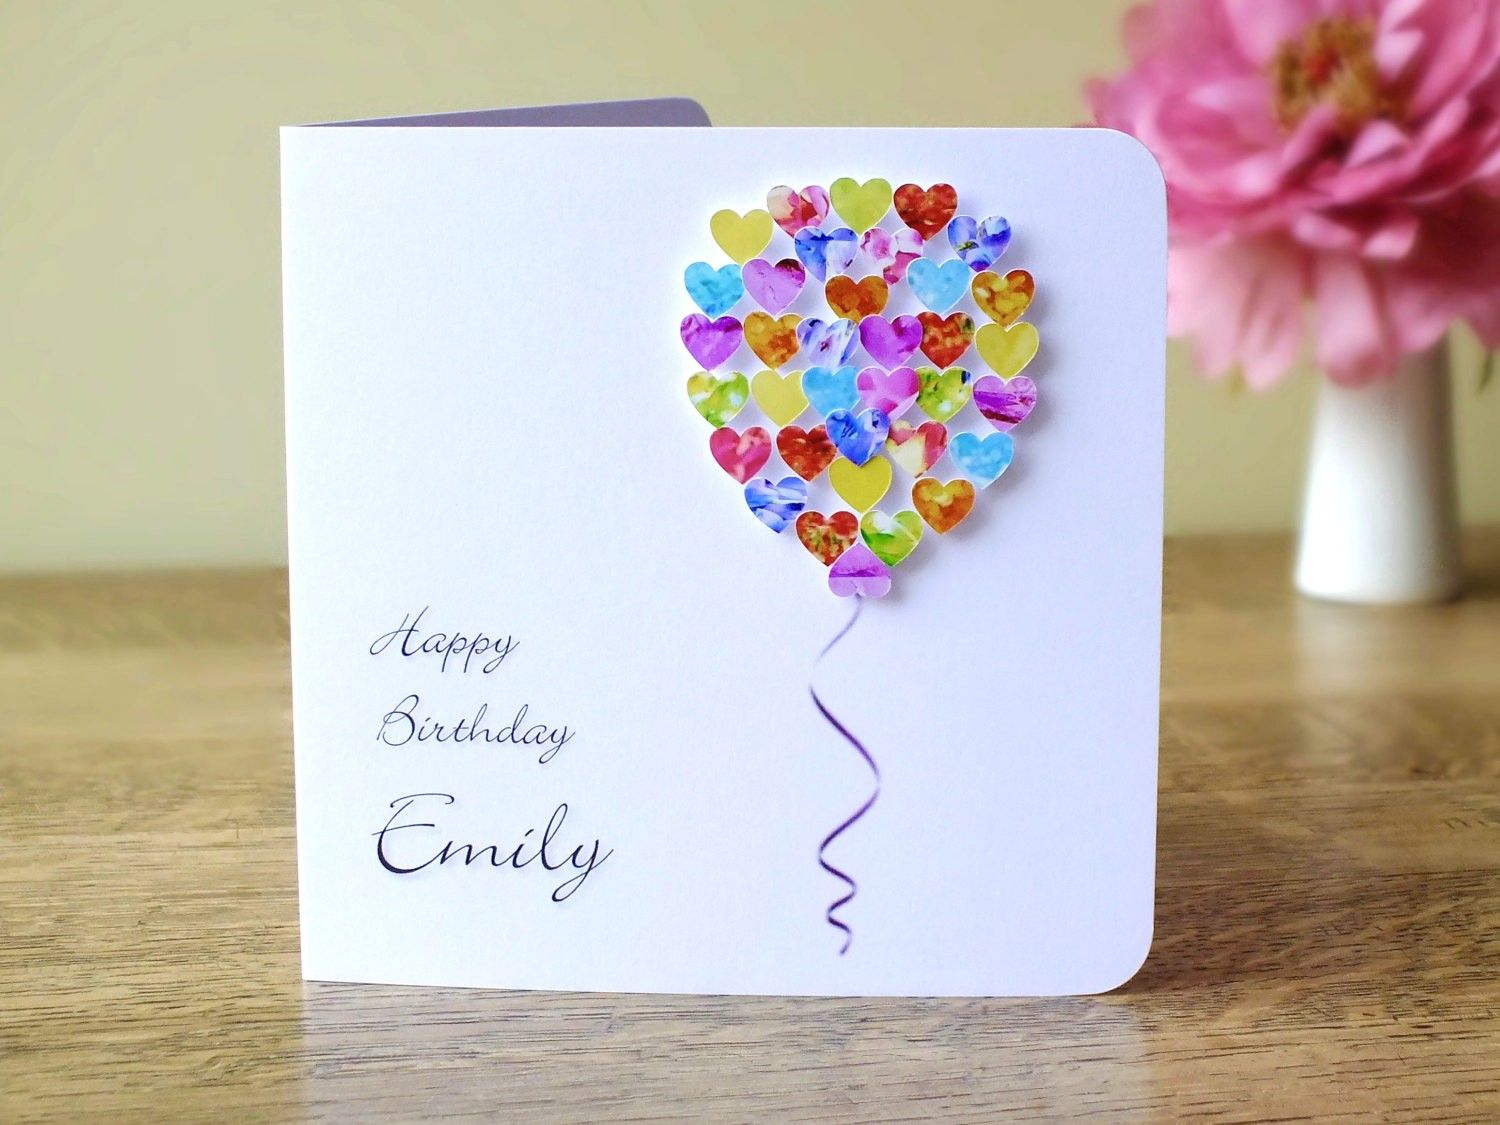 Pin By Jennydasilva Marques On Cards Birthday Pinterest Cards